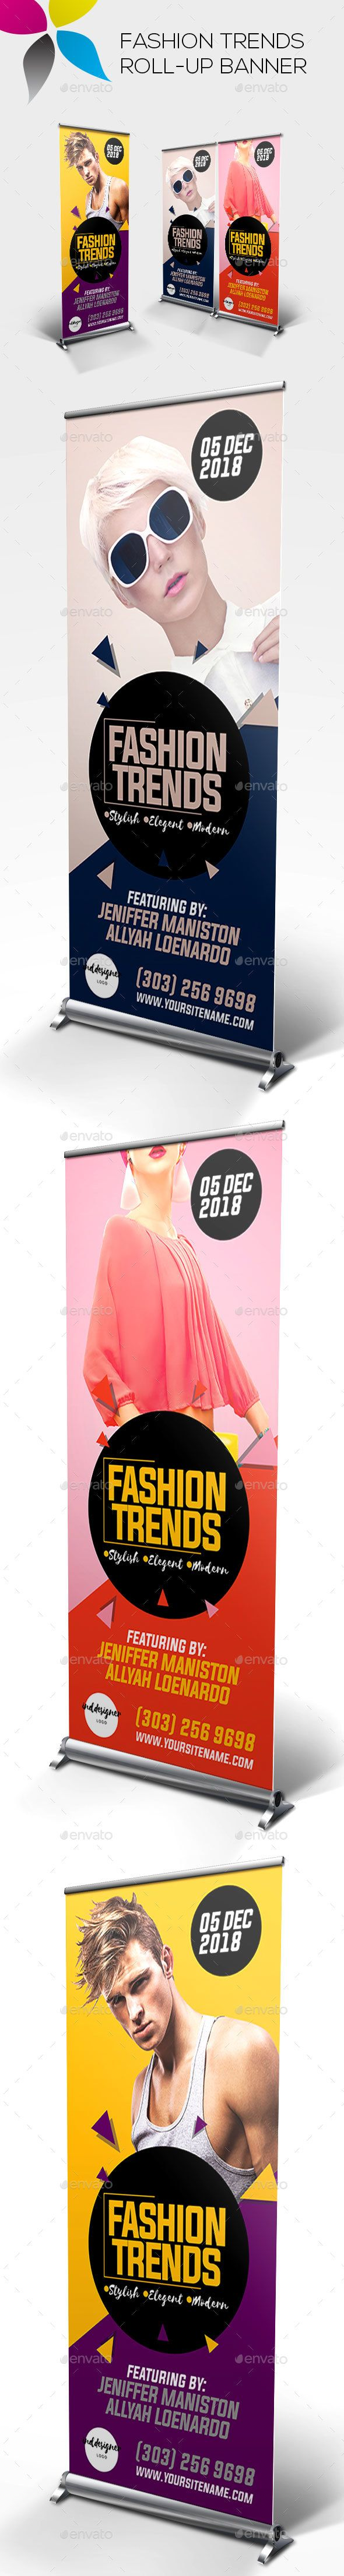 Fashion Trends Roll-up Banner by inddesigner Banner size 30x70in Bleed 1in Adobe Photoshop CC CMYK 100dpi Info file included Photos used in the preview are not included